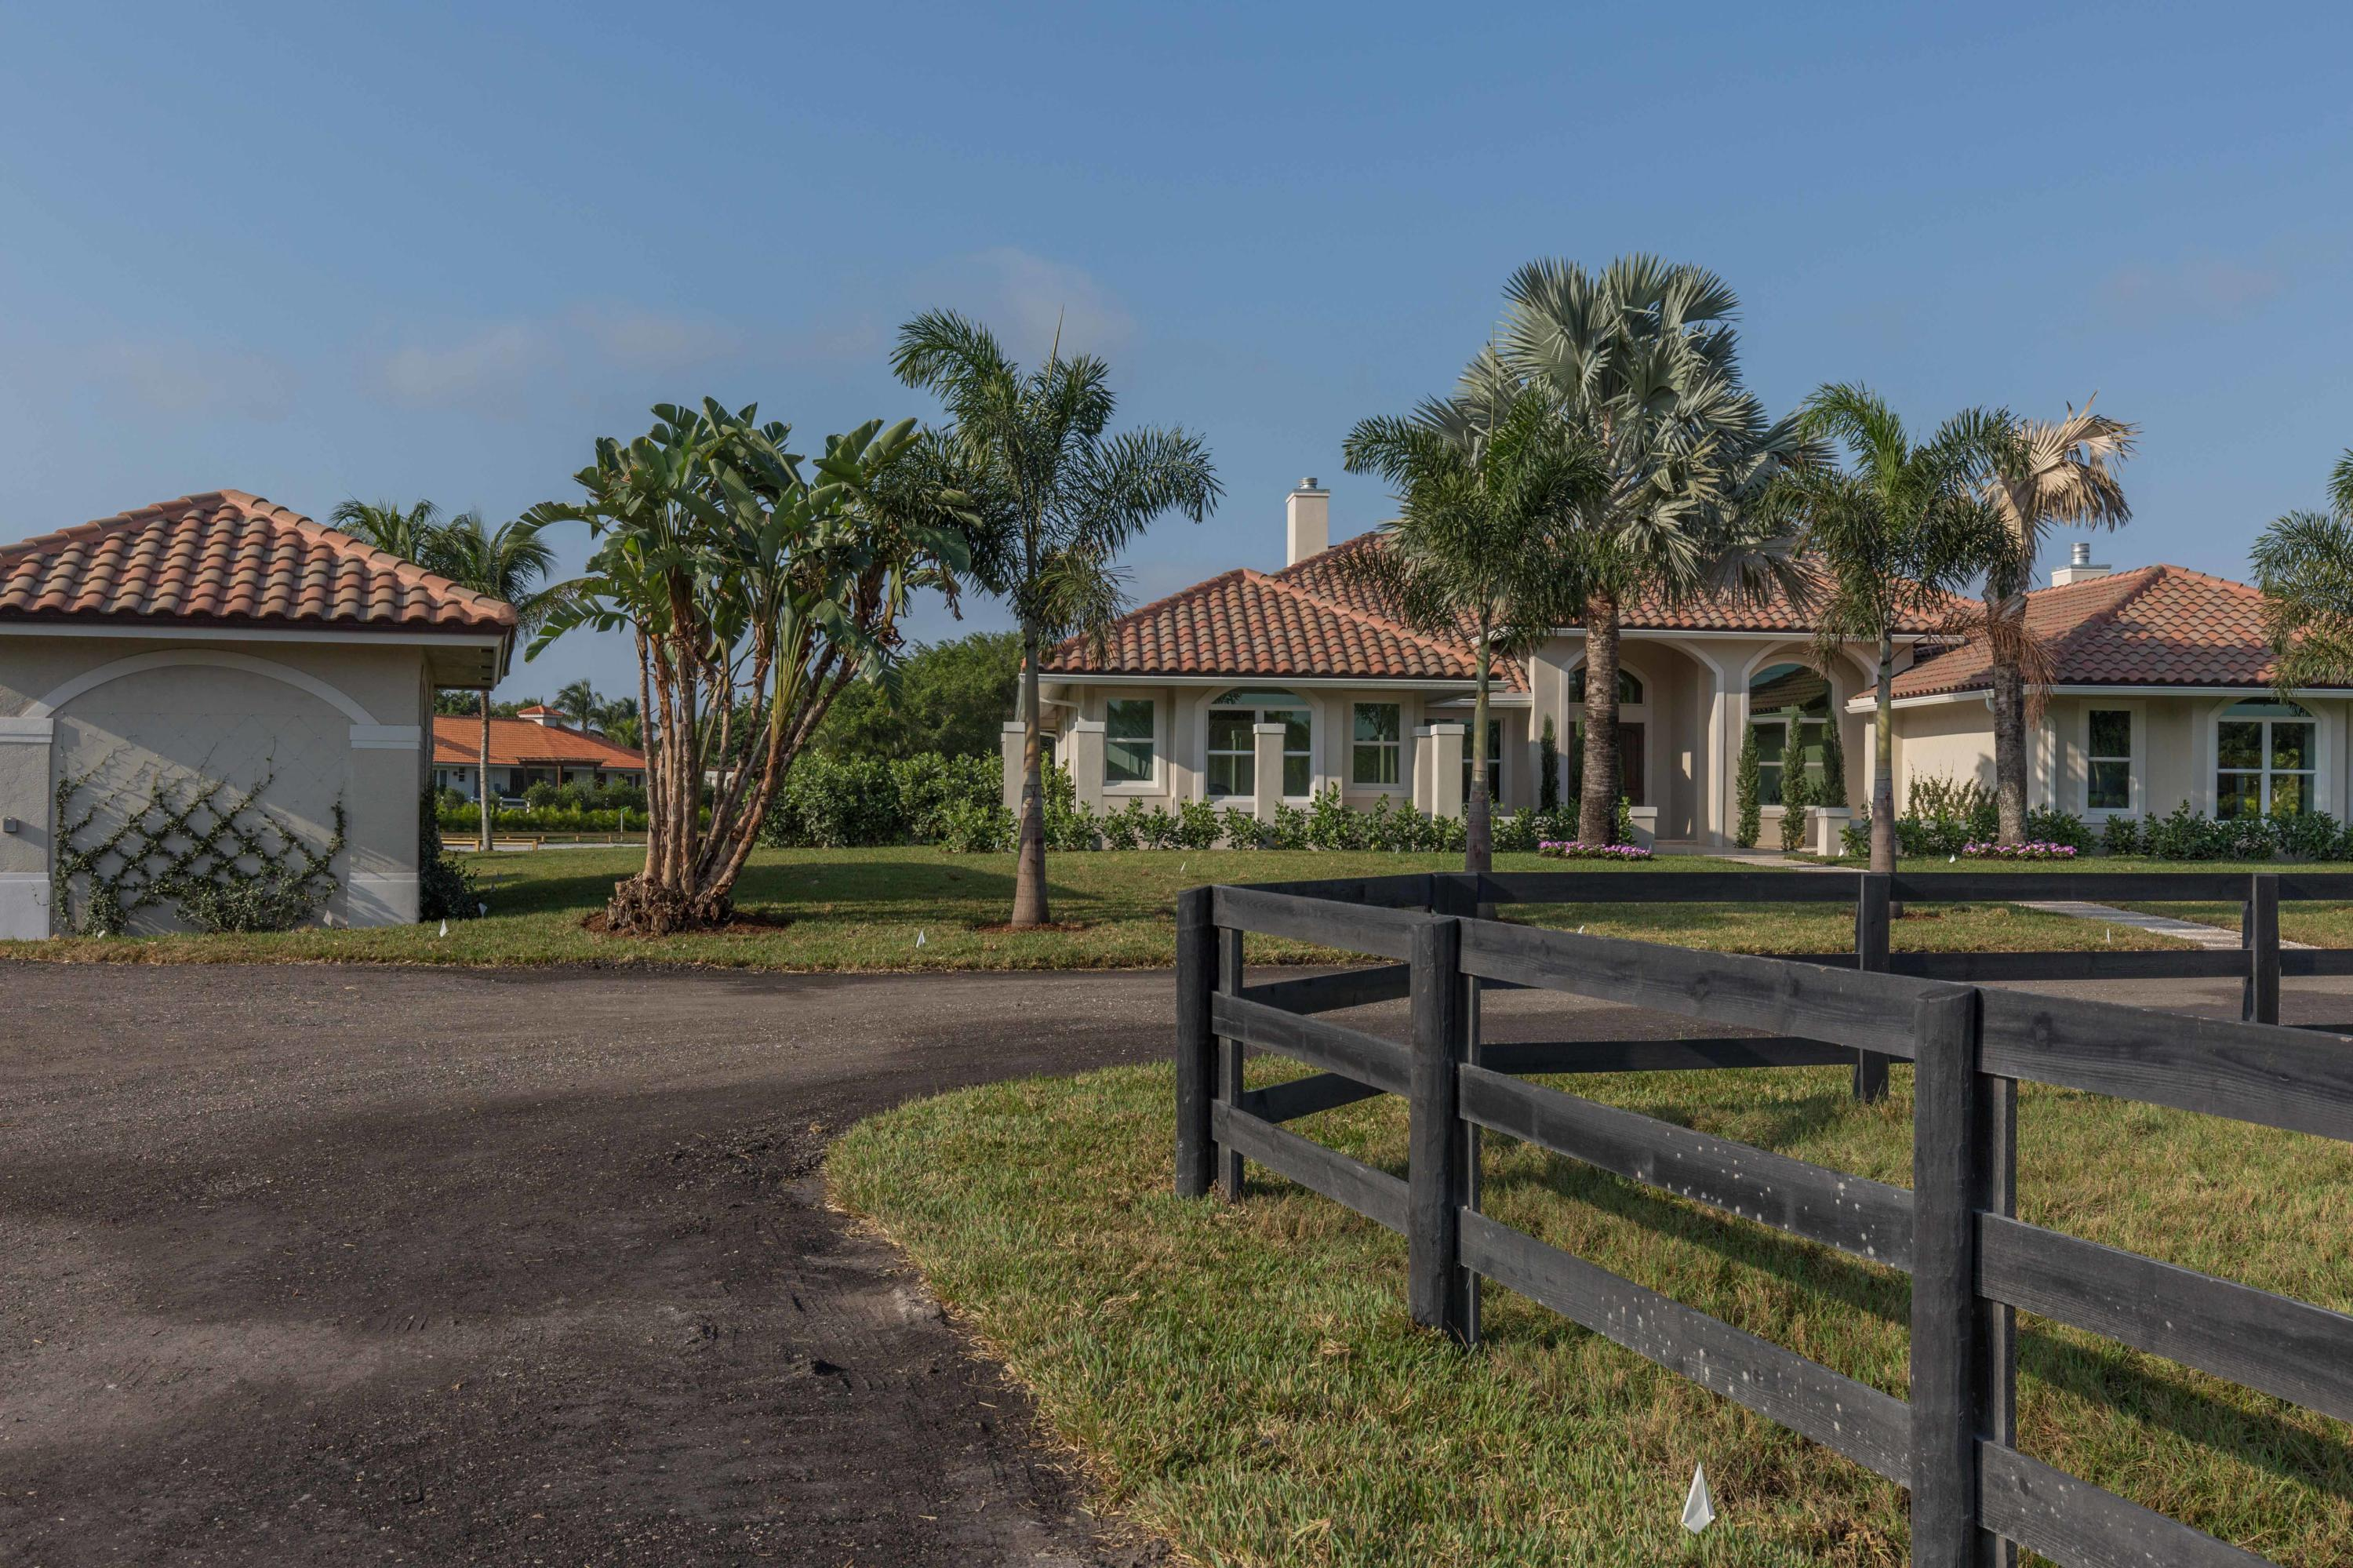 14136 Equestrian Way, Wellington, Florida 33414, 6 Bedrooms Bedrooms, ,6.1 BathroomsBathrooms,Single Family,For Sale,SADDLE TRAIL PARK,Equestrian,1,RX-10414112